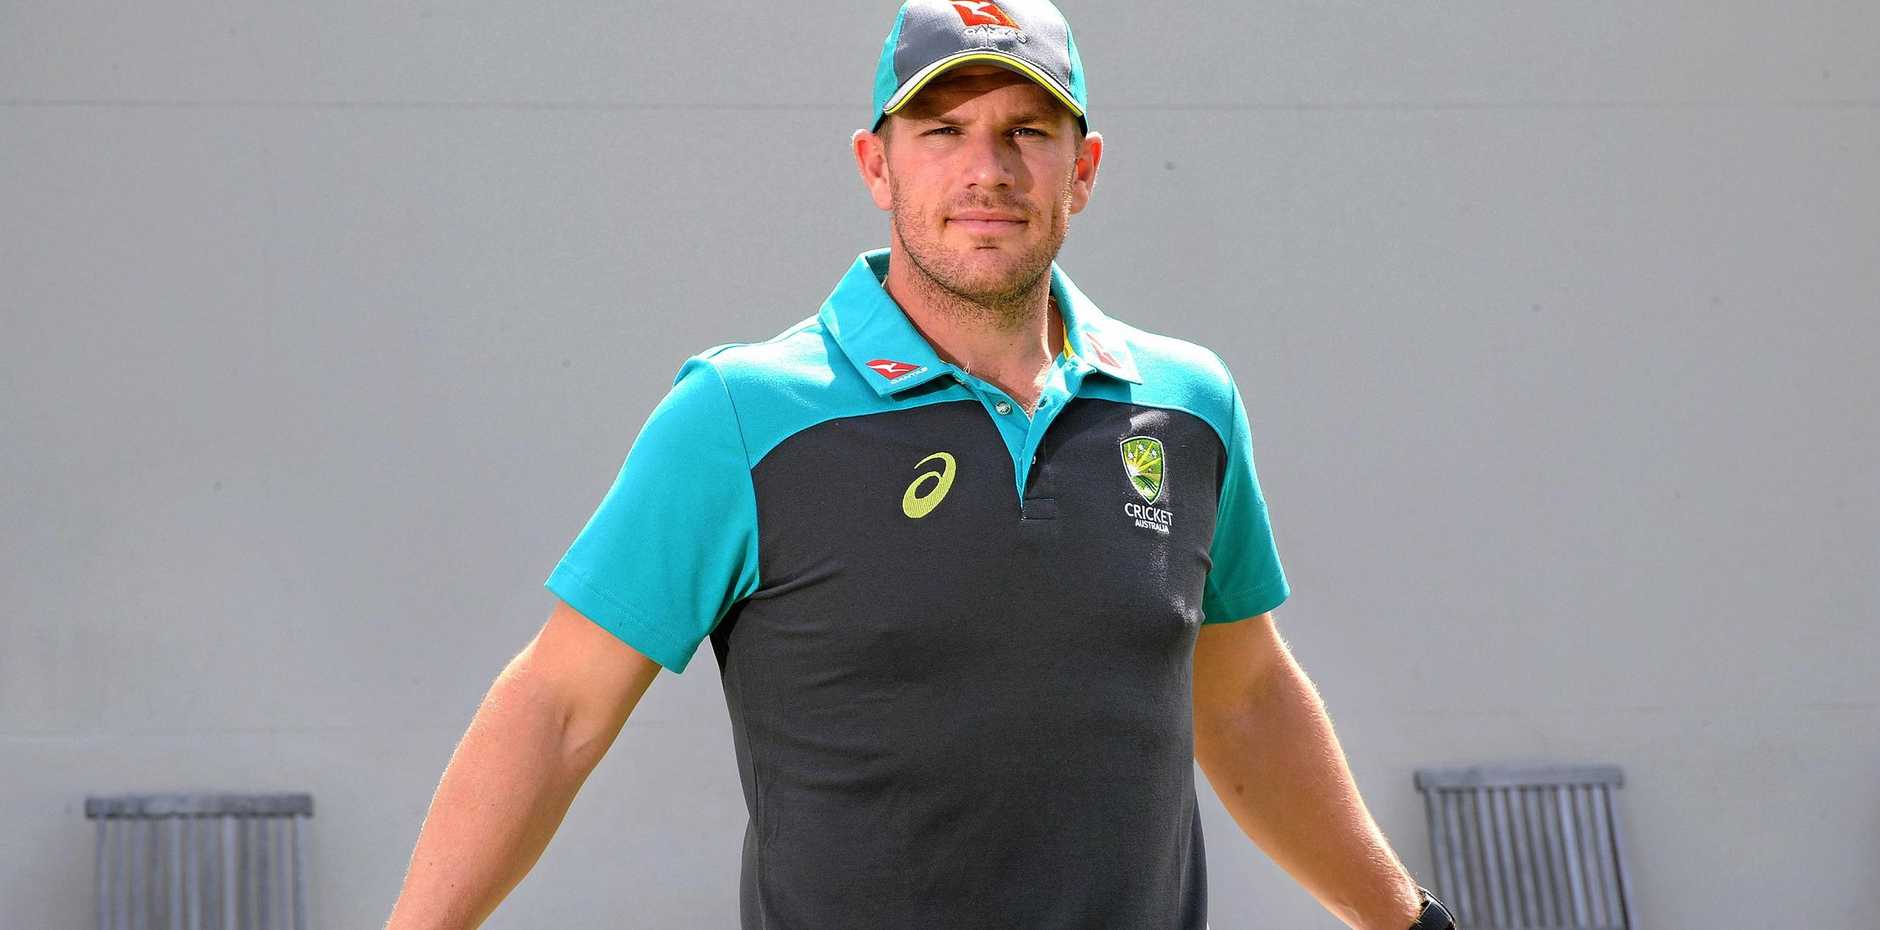 Channel Seven Queensland general manager Ben Roberts-Smith says a move to a better viewing experience will enable cricket lovers to get an even better offering of their favourite players, such as Australian star Aaron Finch.